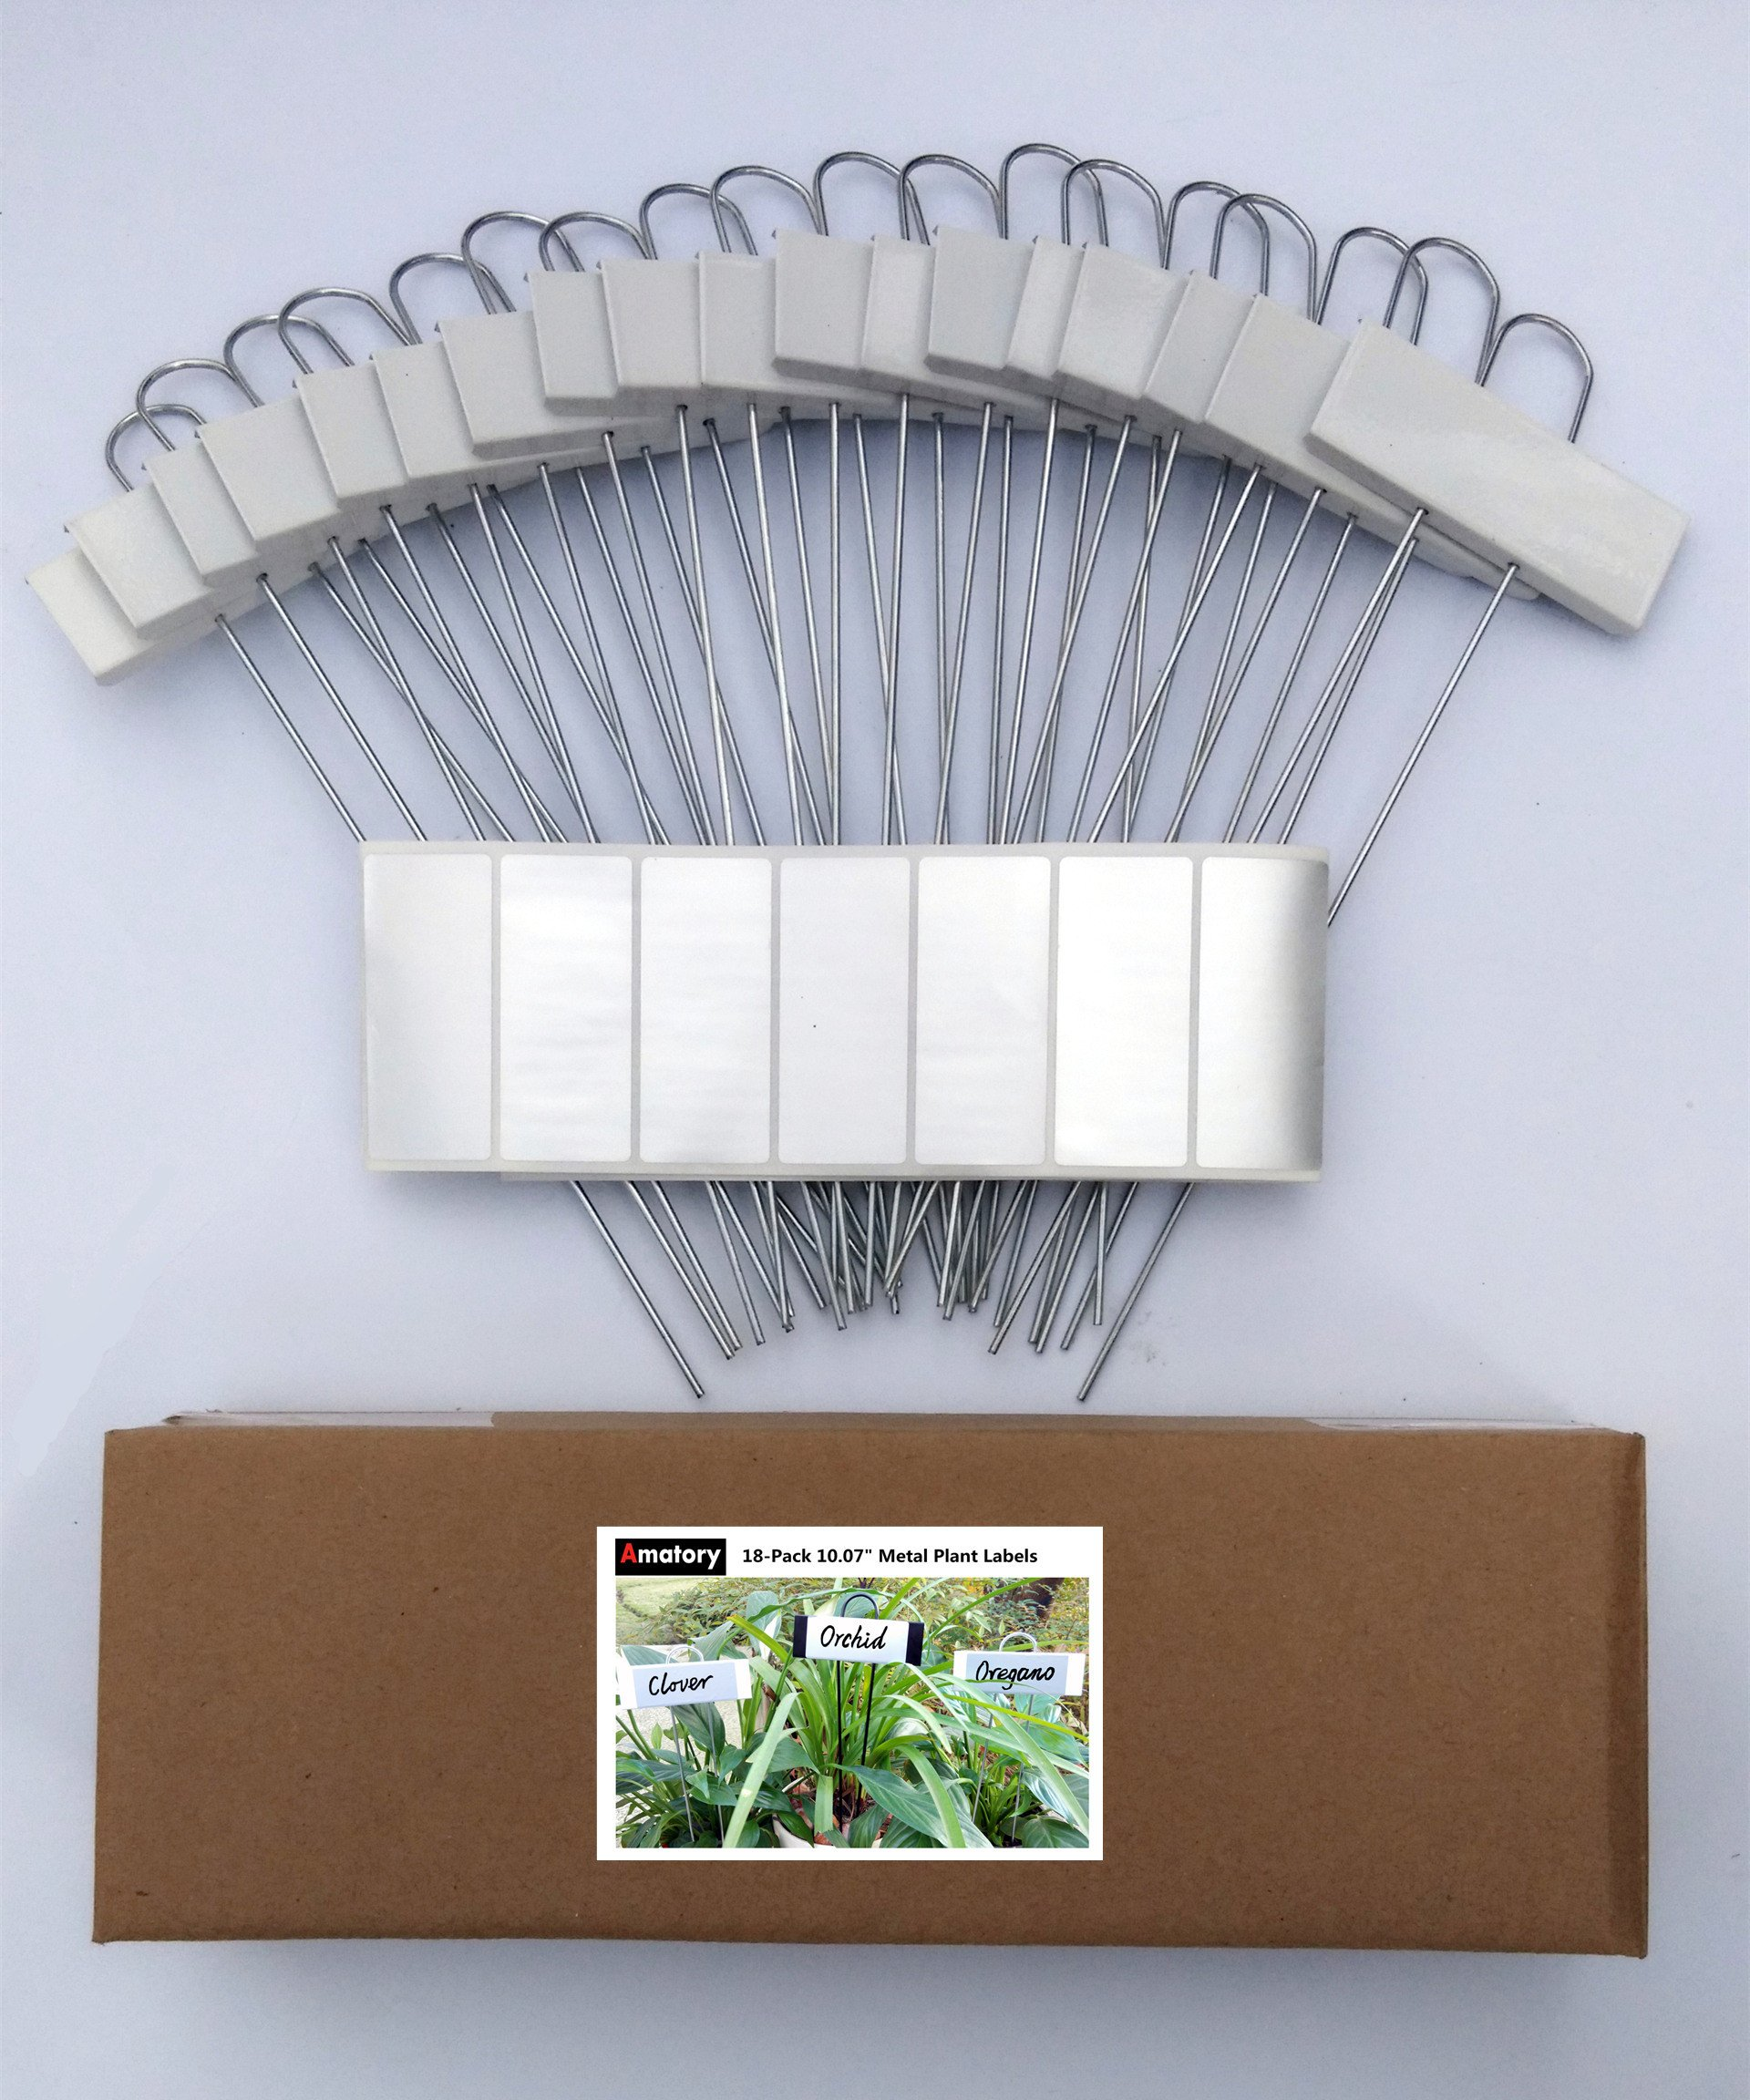 Metal Plant Labels Garden Markers Nursery Tags Reusable Planting Gardening Seedling Labels for Vegetable Herb Flower Greenhouse Set of 18,With 36 Pcs Self-adhesive Polyester Labels (White-10.7'')